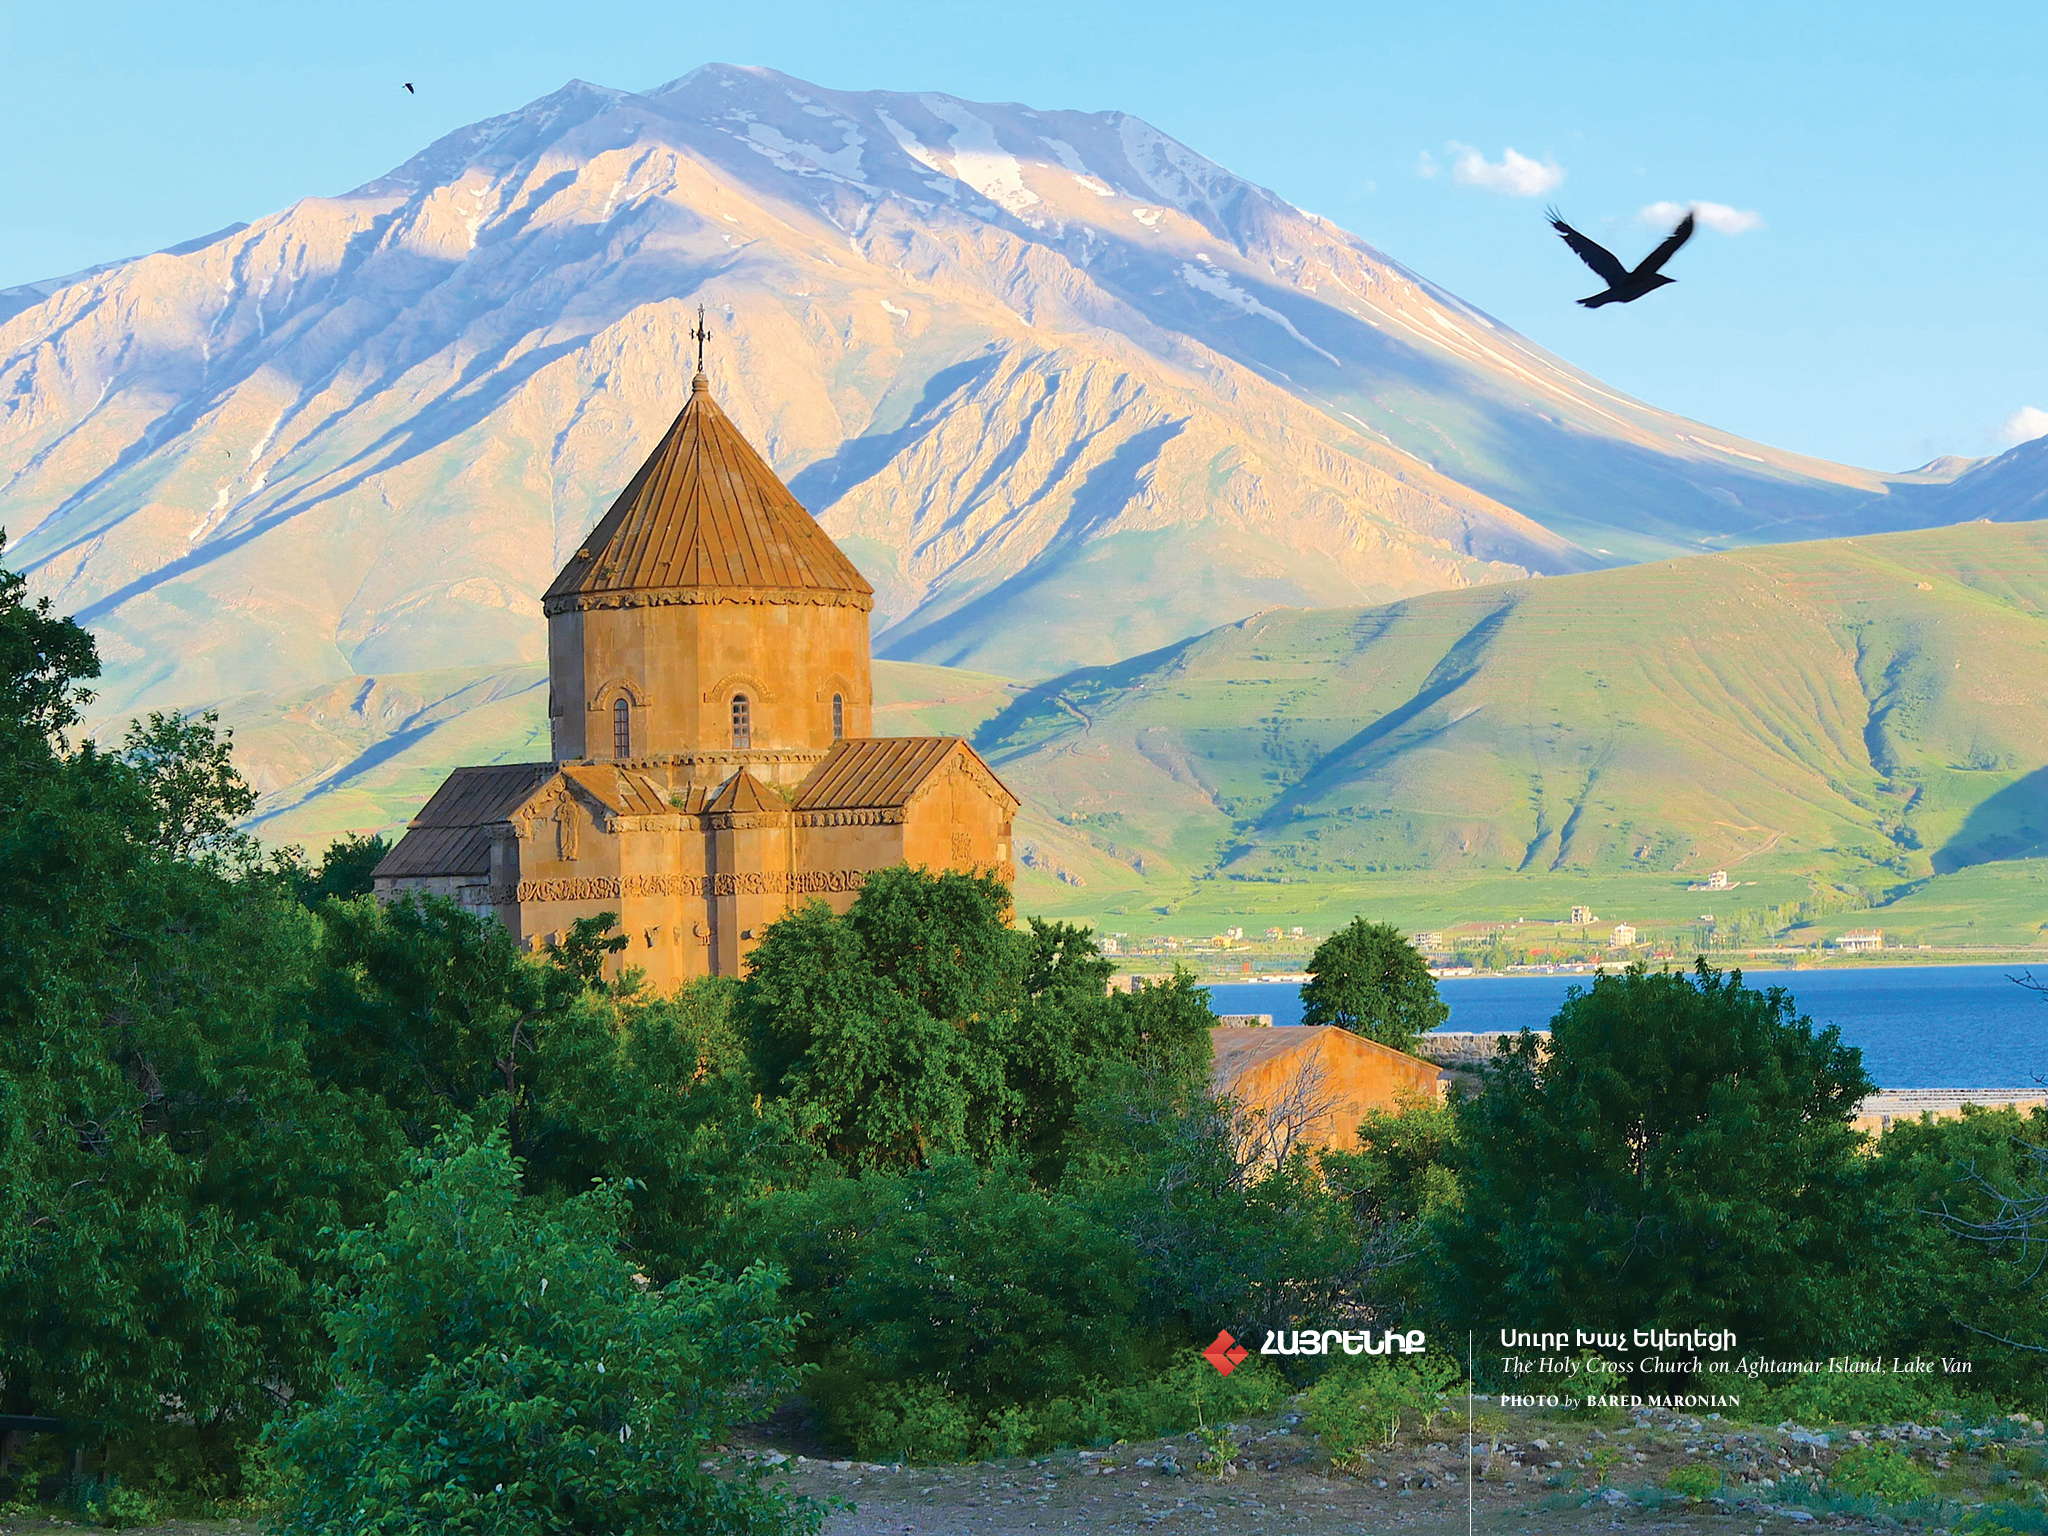 Fanciful Megapixels Hd Holy Cross Church On Aghtamar Island Hd Iphone Western Armenia Wallpapers Hairenik 2048 X 1536 Resolution Monitor 2048 X 1536 Resolution dpreview 2048 X 1536